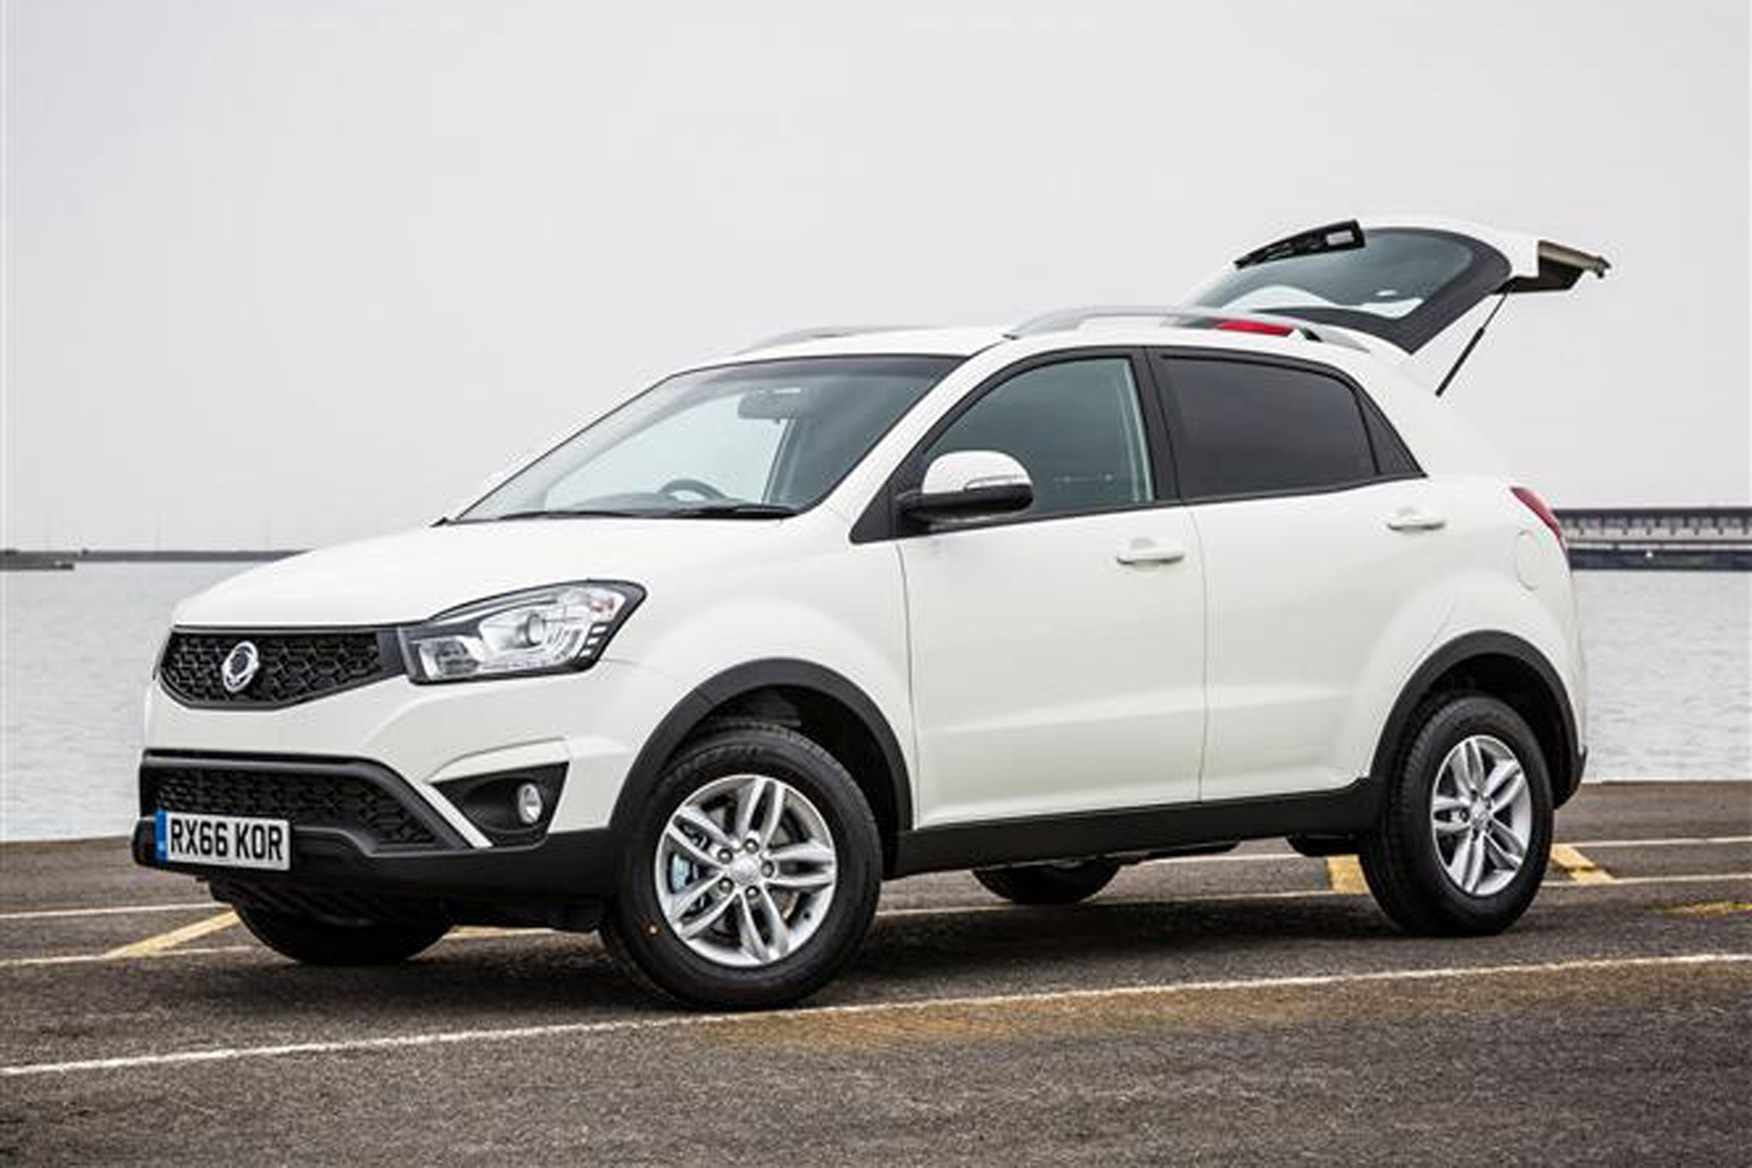 SsangYong Korando review on Parkers Vans - front